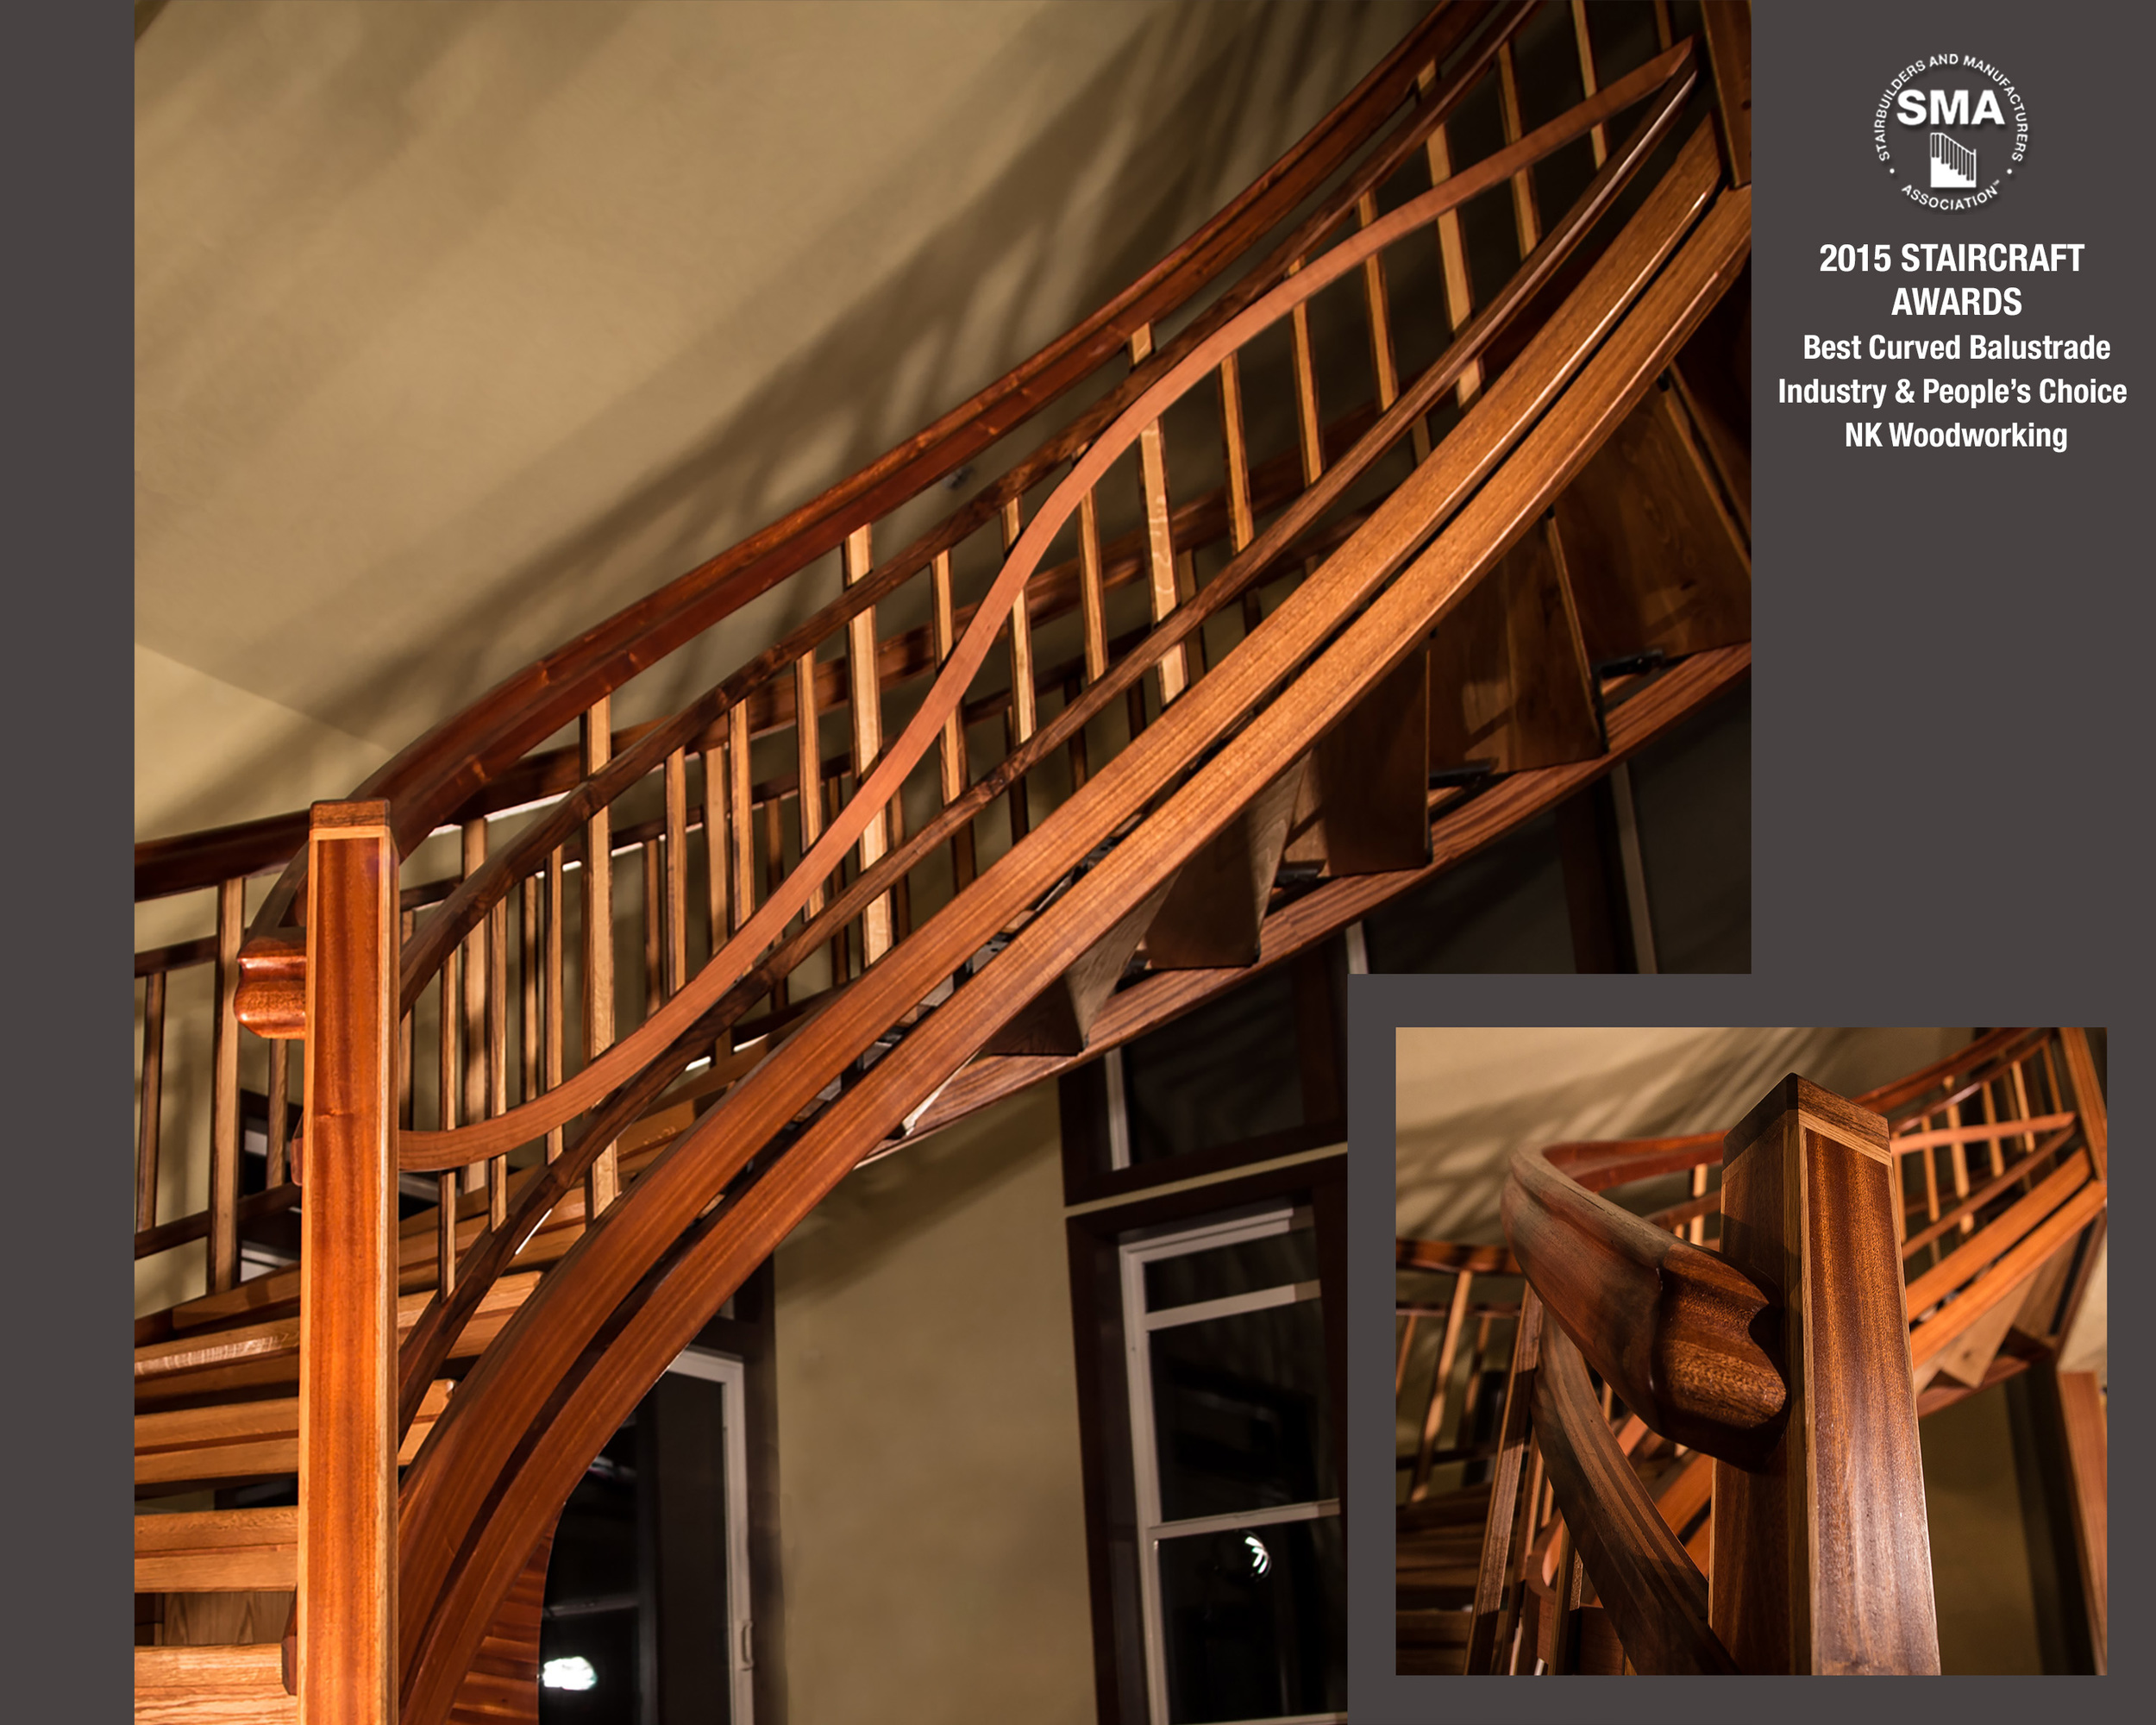 SMA Winner:  NK Woodworking's Best Curved Balustrade - Harmony  - Winning both   Industry and People's Choice Awards